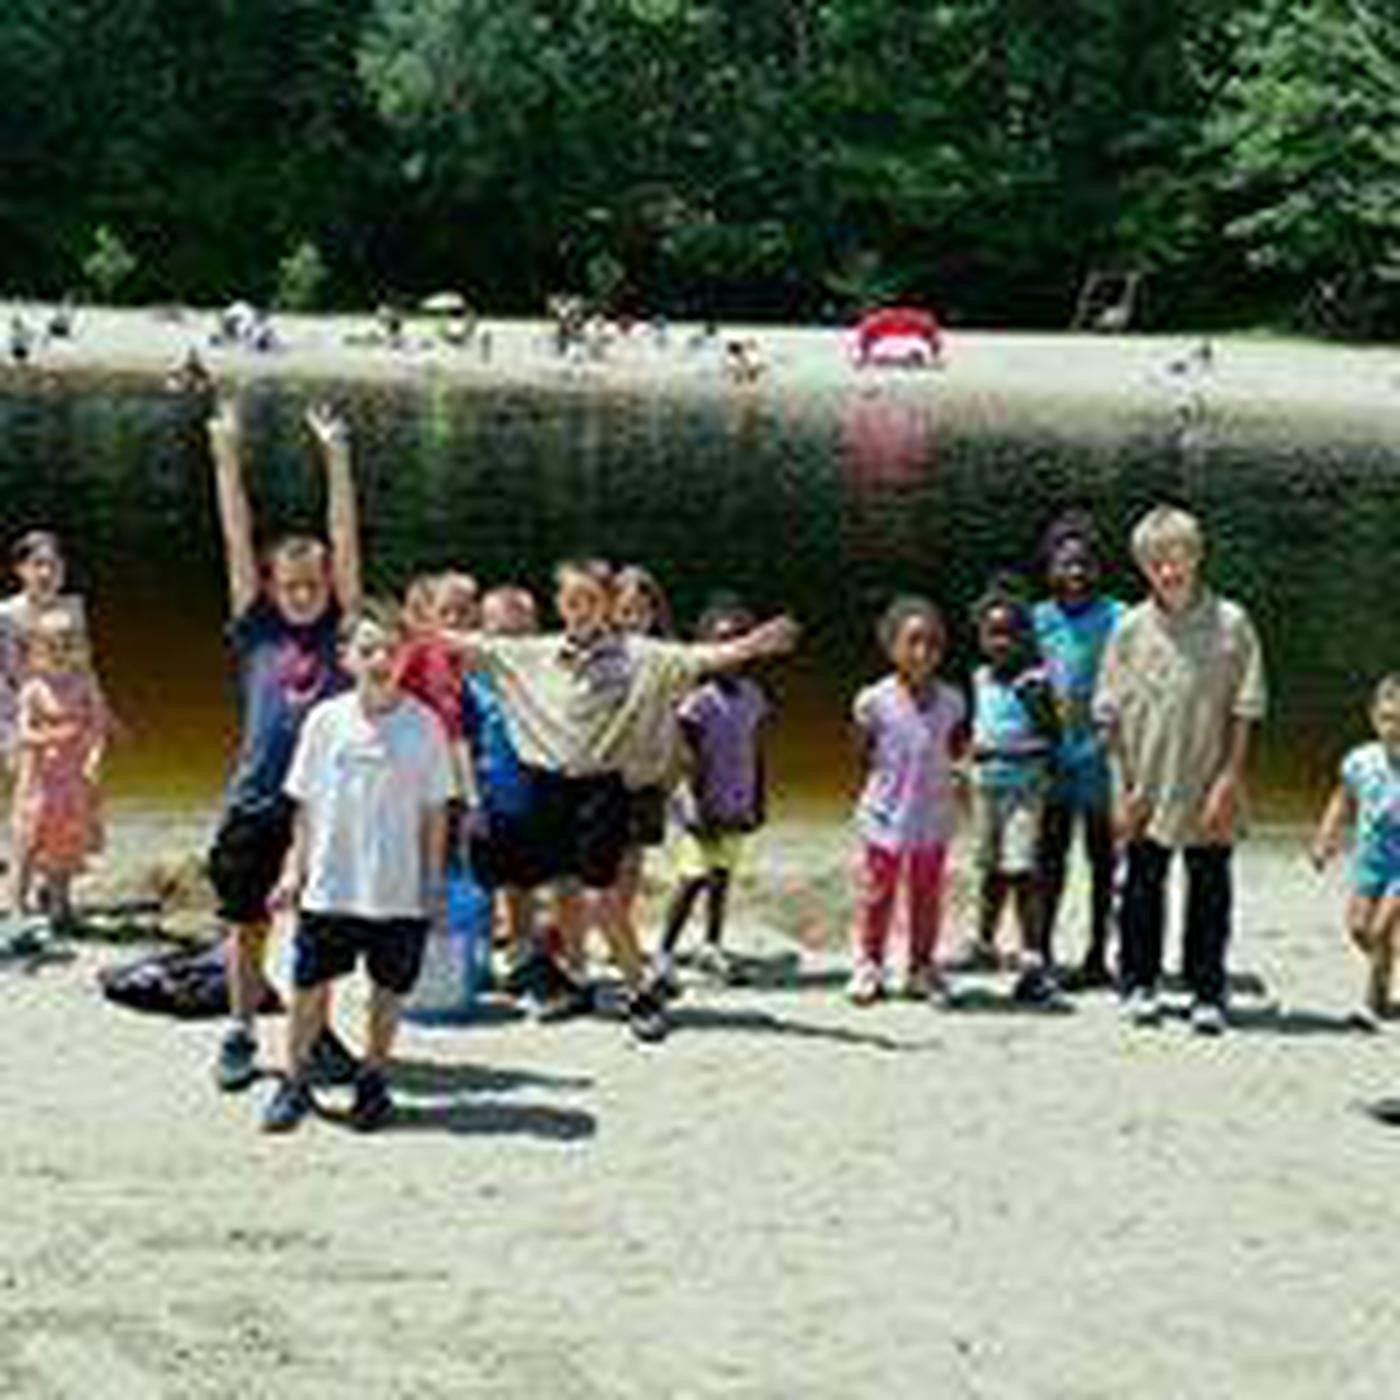 vistors of all ages, playing on both sandy beaches, open natural river swim area in the background.The water is fine . . swim time!  Bring a picnic lunch or dinner and enjoy your day!